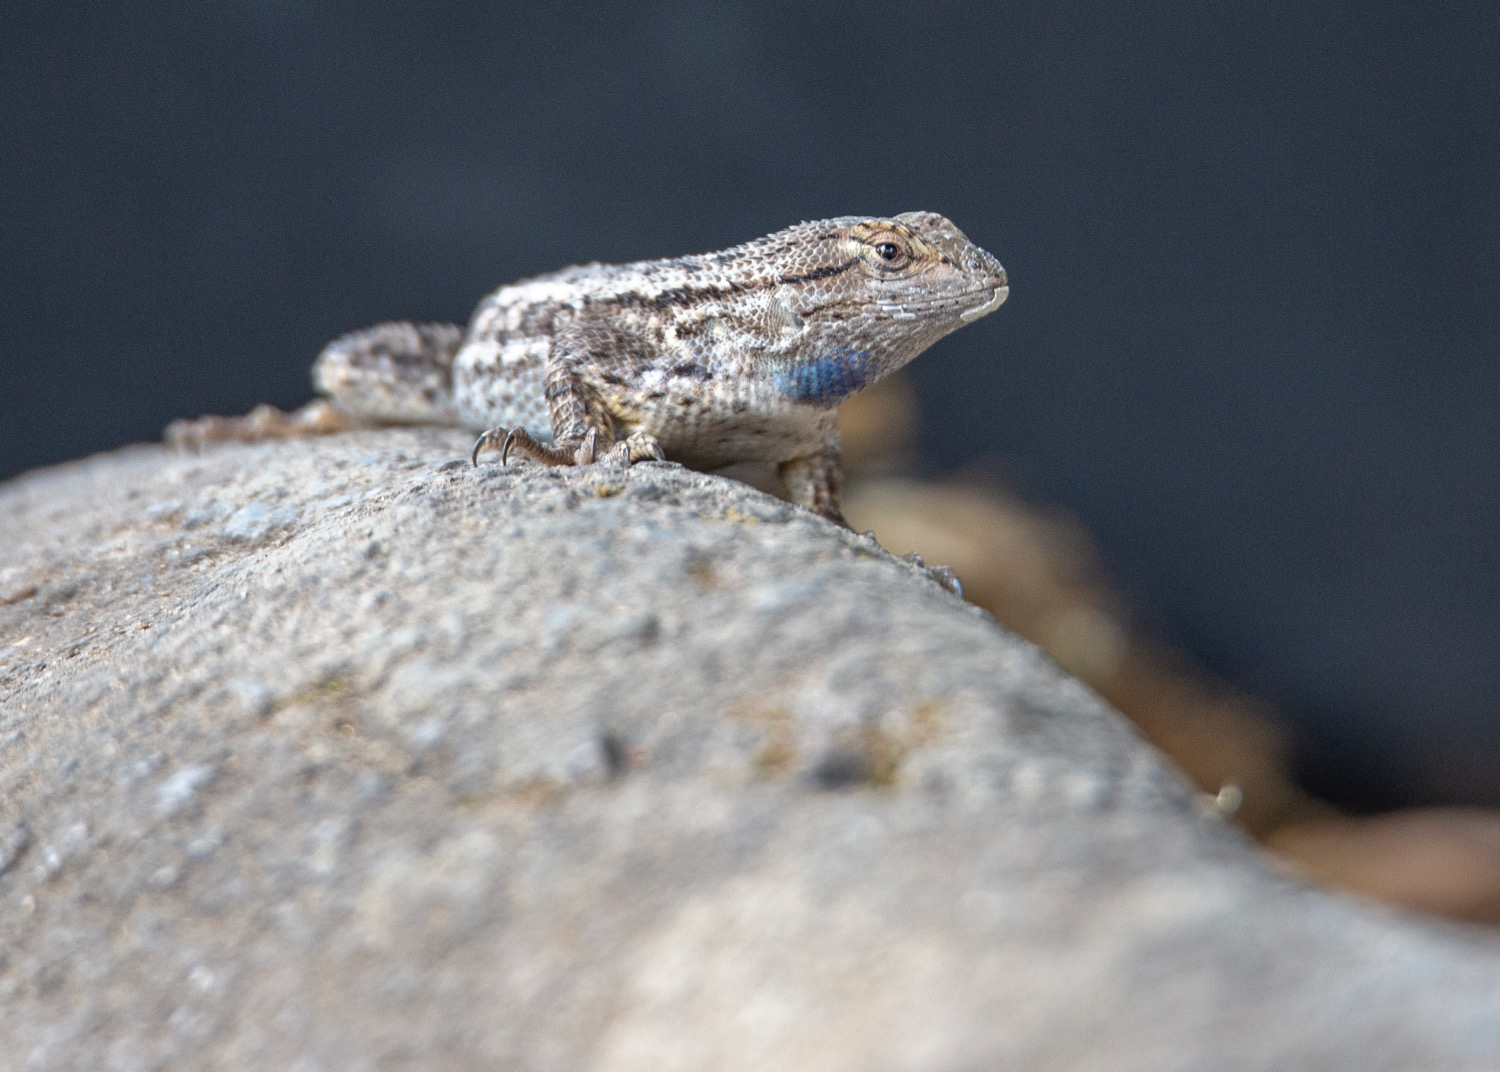 This little guys was hanging out around the campsite. From what I can tell, its a juvenile Western Fence lizard. He (?) made an appearance many times throughout the days at the campground.